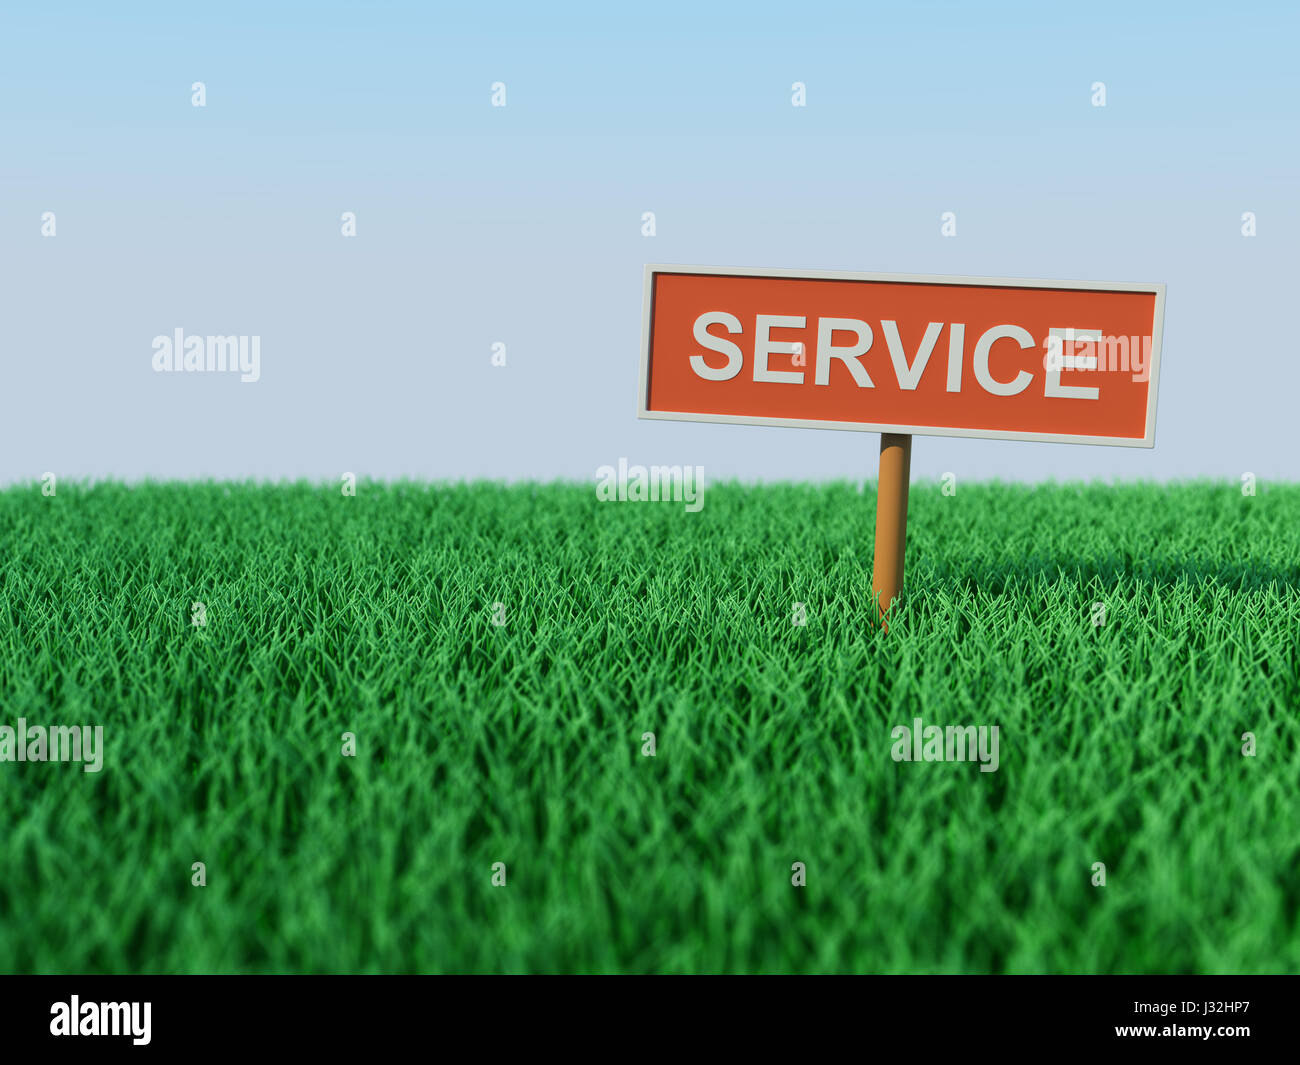 Service concept - 3D Rendered Image - Stock Image